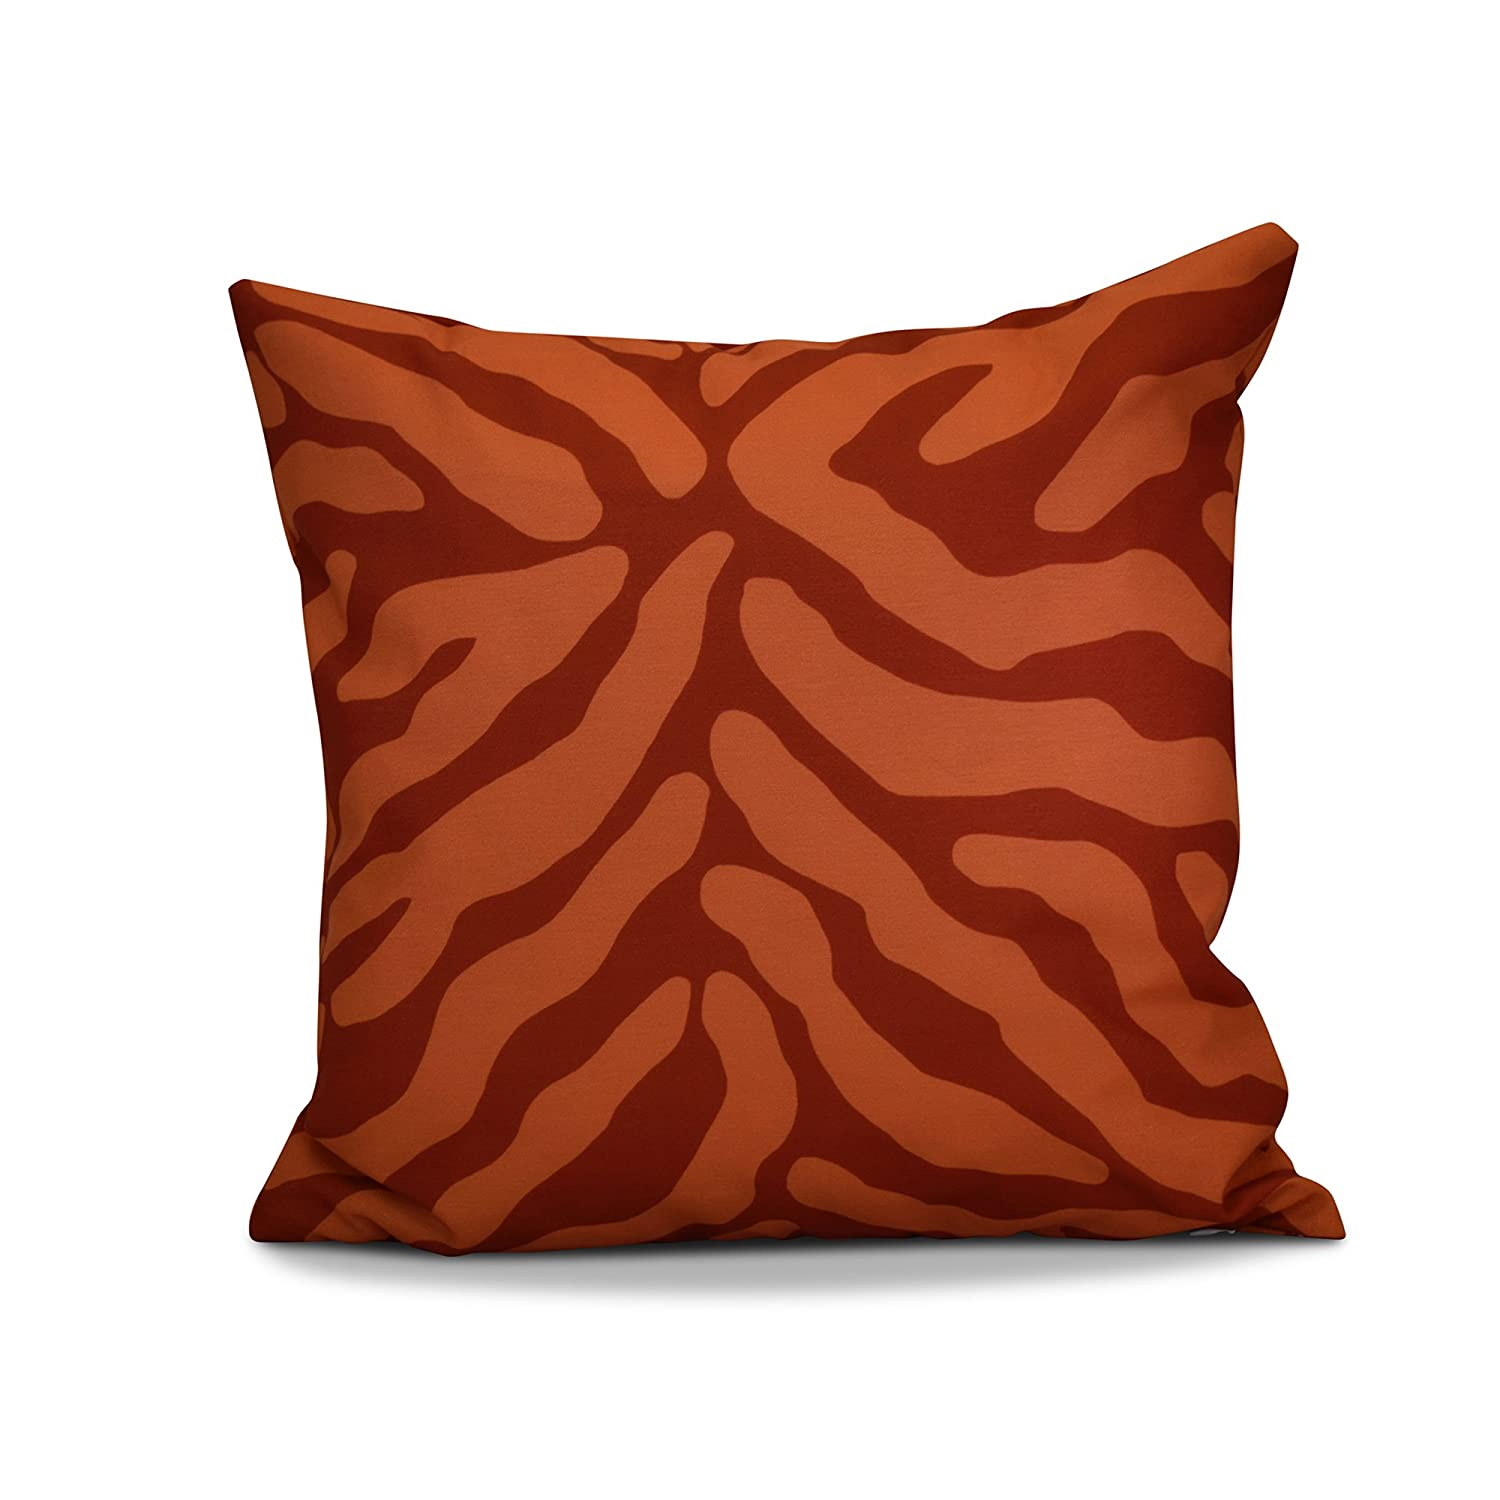 E by design PGN721OR11OR17-18 18 x 18-inch, Animal Stripe, Geometric Print 18x18 Red